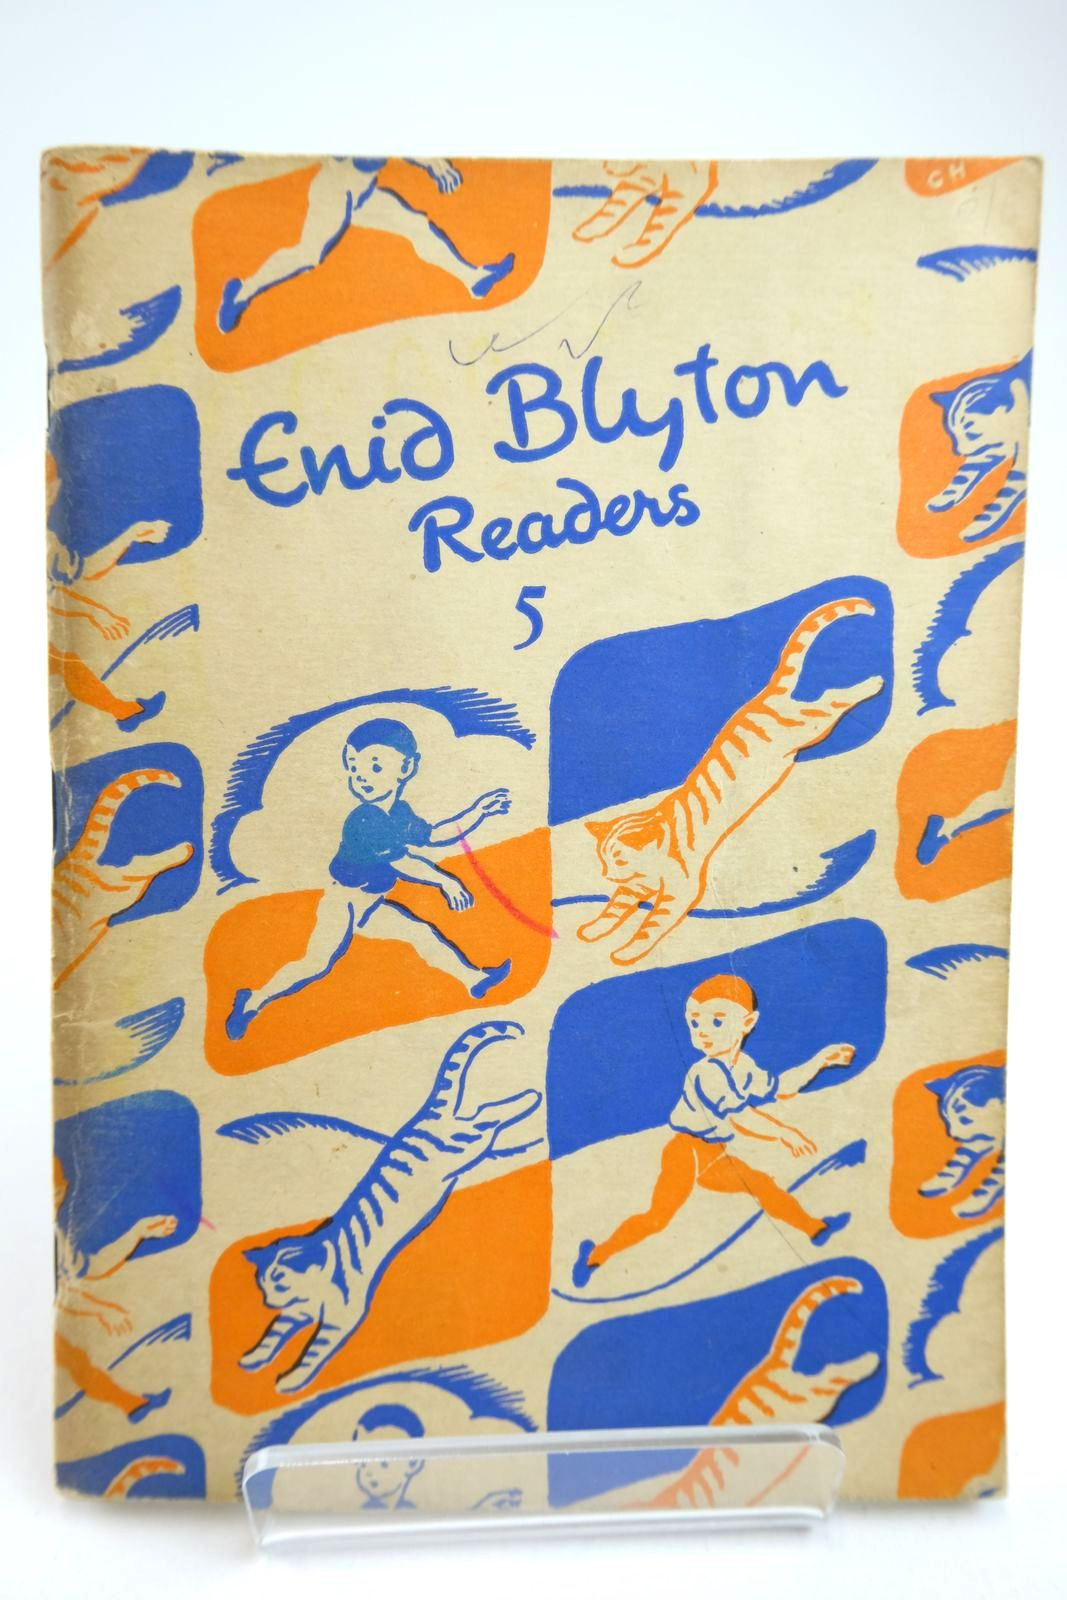 Photo of ENID BLYTON READERS 5 written by Blyton, Enid illustrated by Soper, Eileen published by Macmillan & Co. Ltd. (STOCK CODE: 2133409)  for sale by Stella & Rose's Books